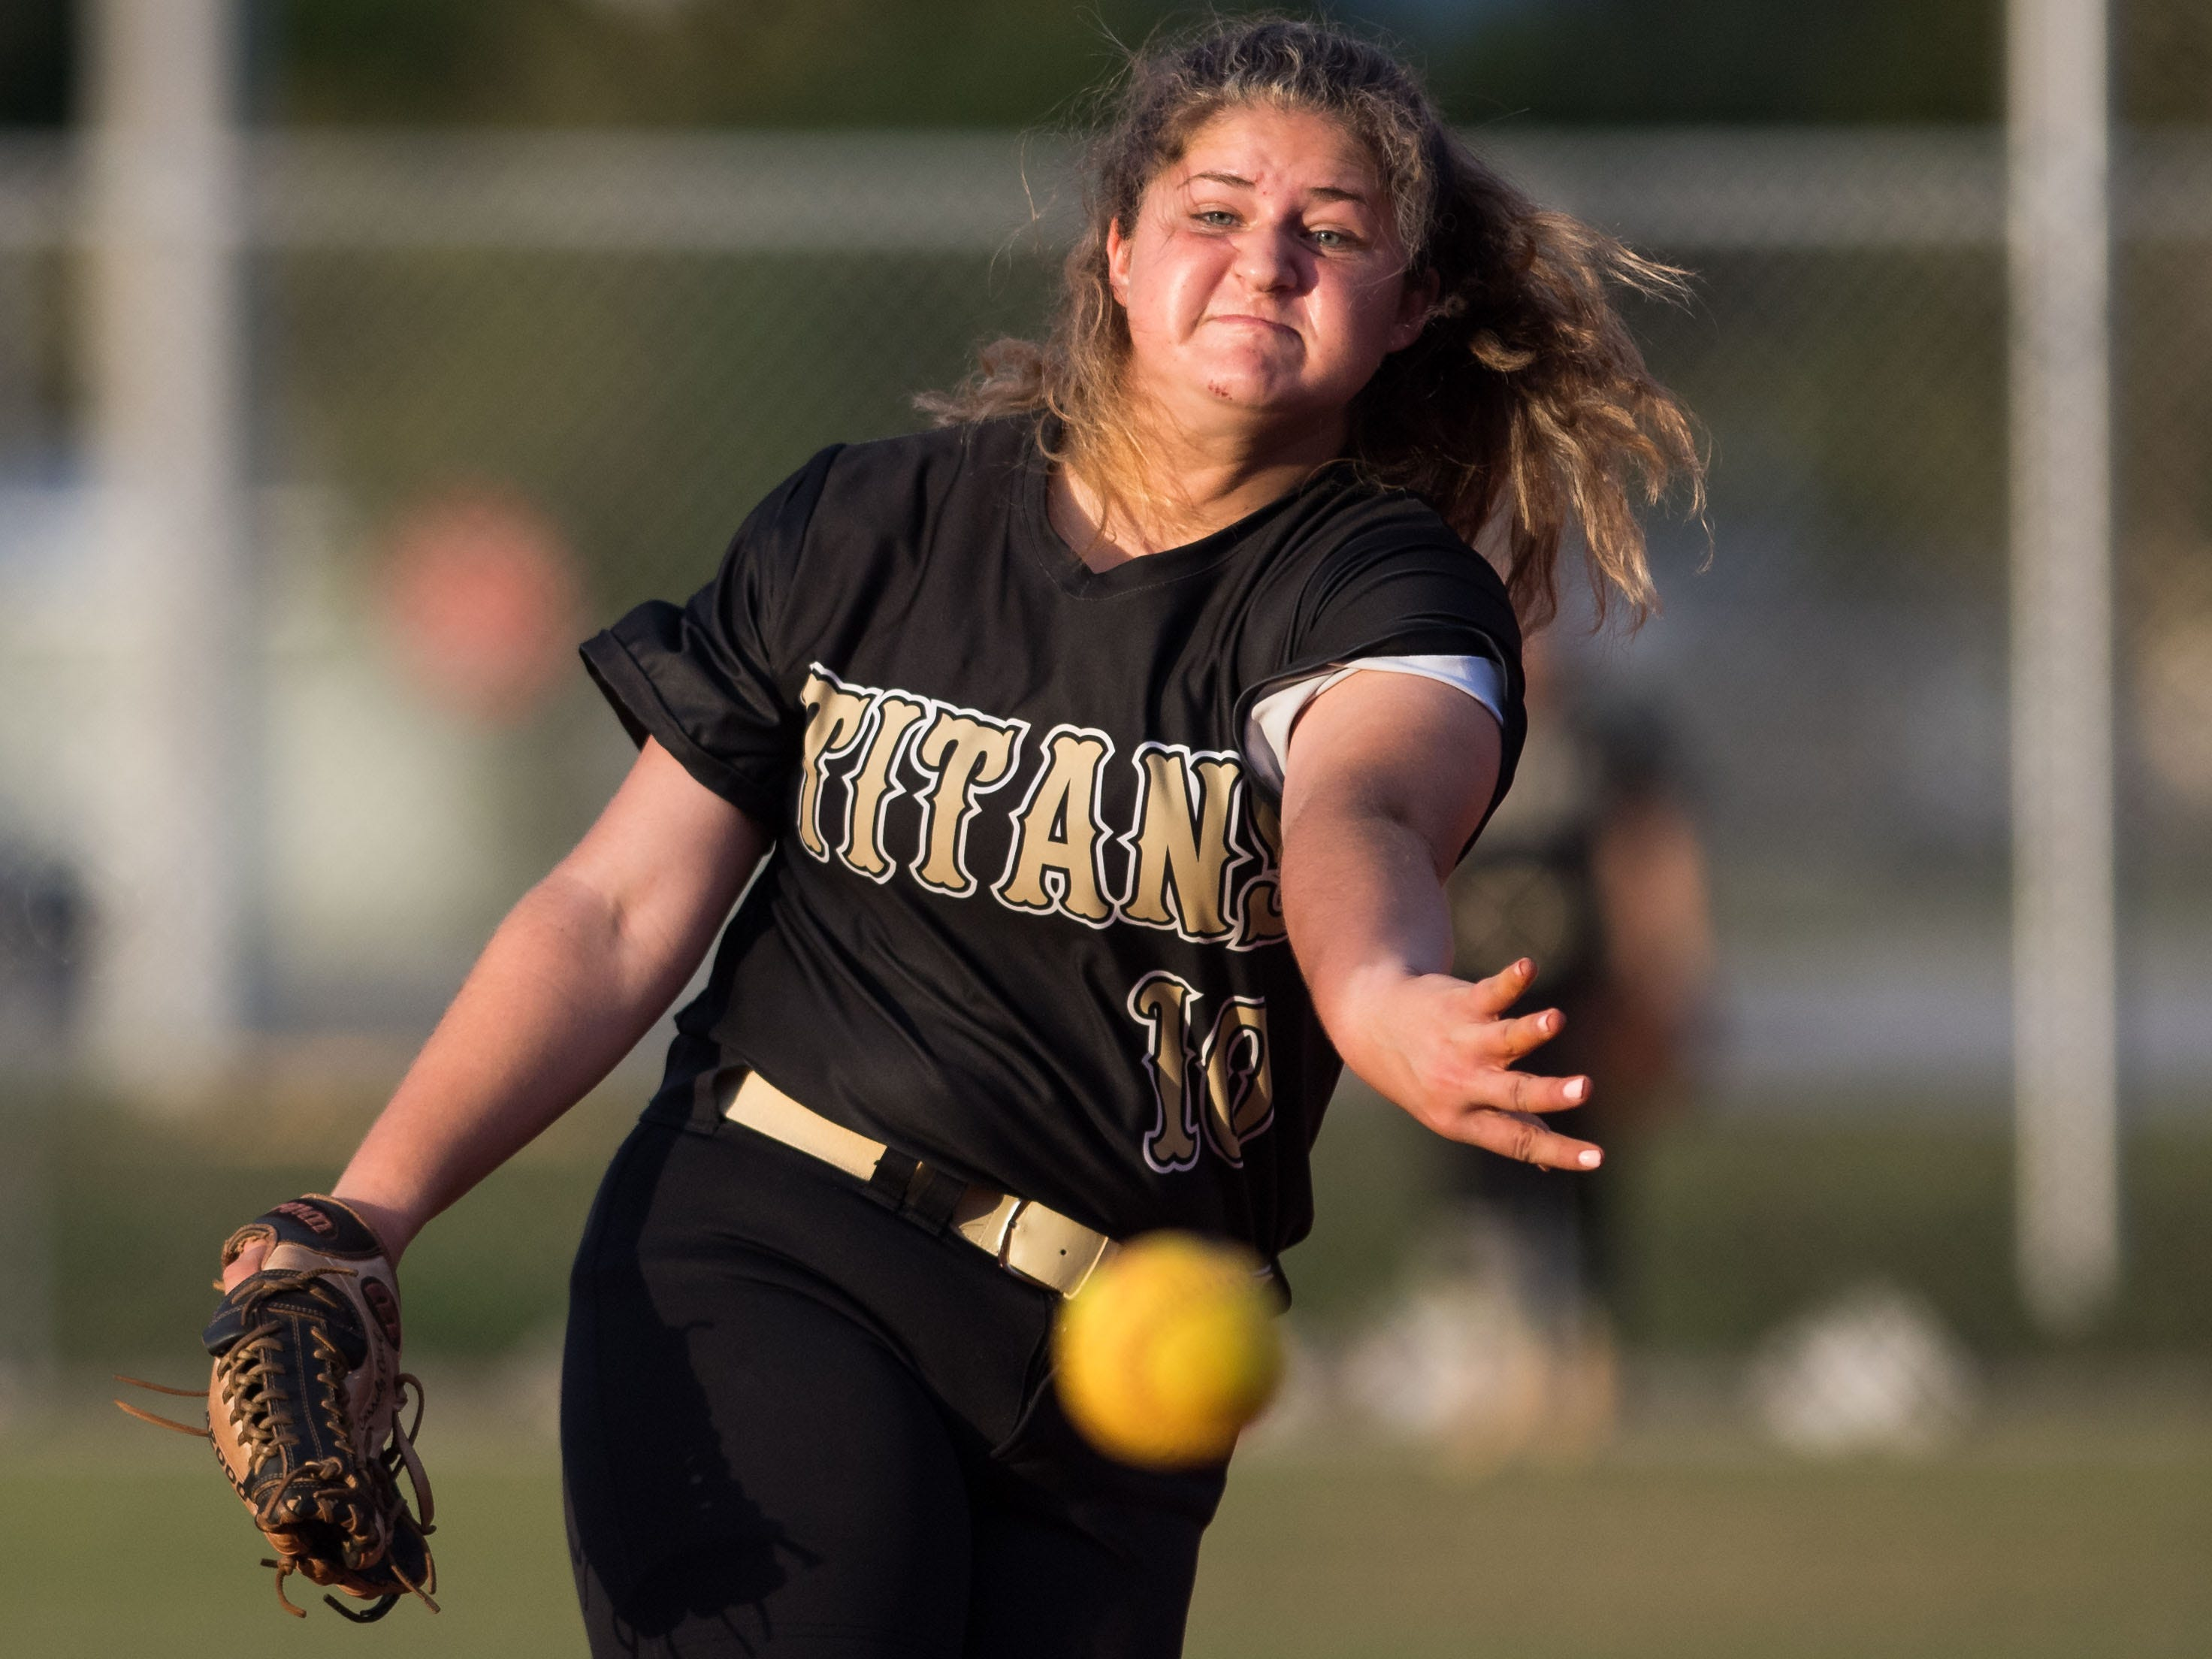 Treasure Coast pitcher Cassidy Curd throws against Vero Beach's Shayne Hewitt in the bottom of the first inning of the high school softball game Friday, March 29, 2019, at Vero Beach High School.